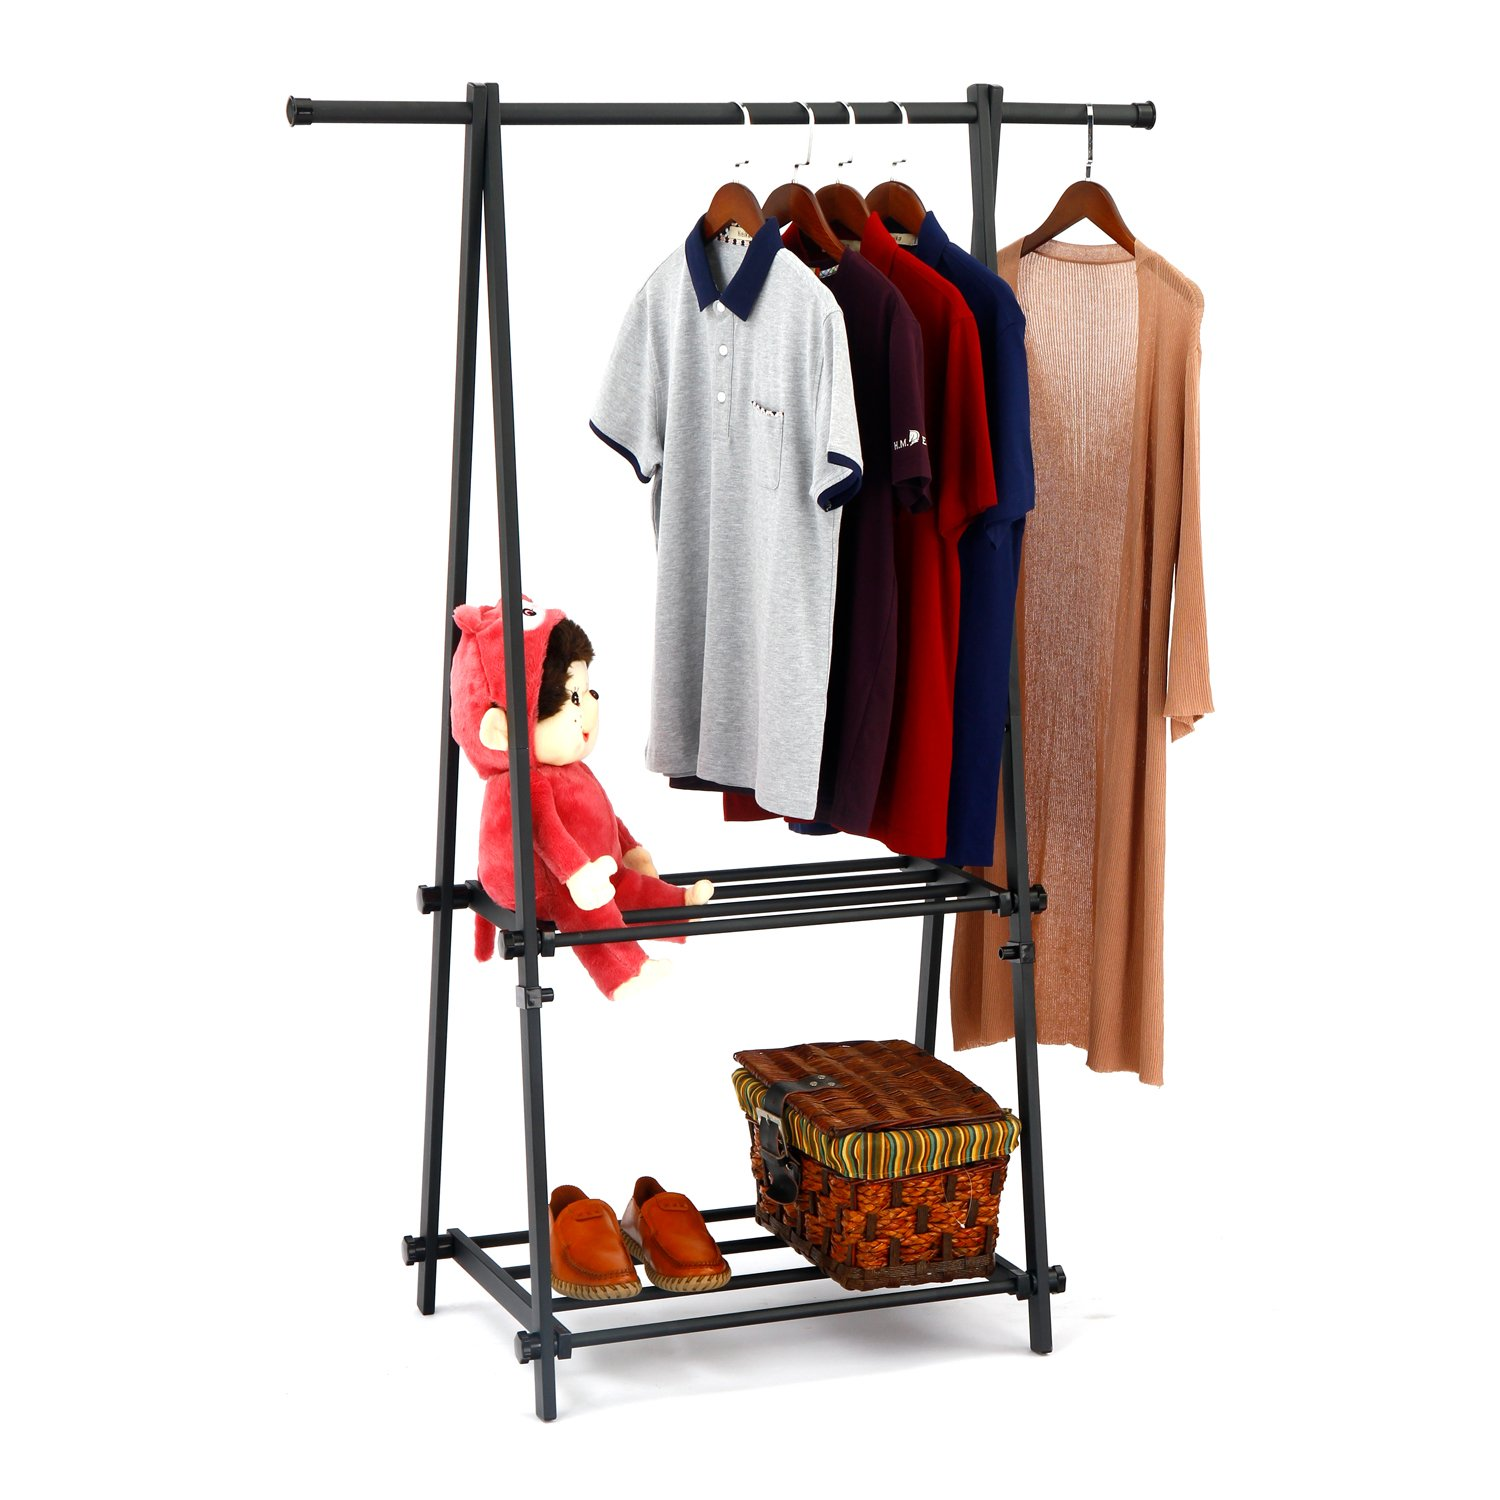 LCH Metal Foldable Entryway Organizer Clothing Garment Rack with 2-Tire Shelf for Shoes Clothes Storage Black